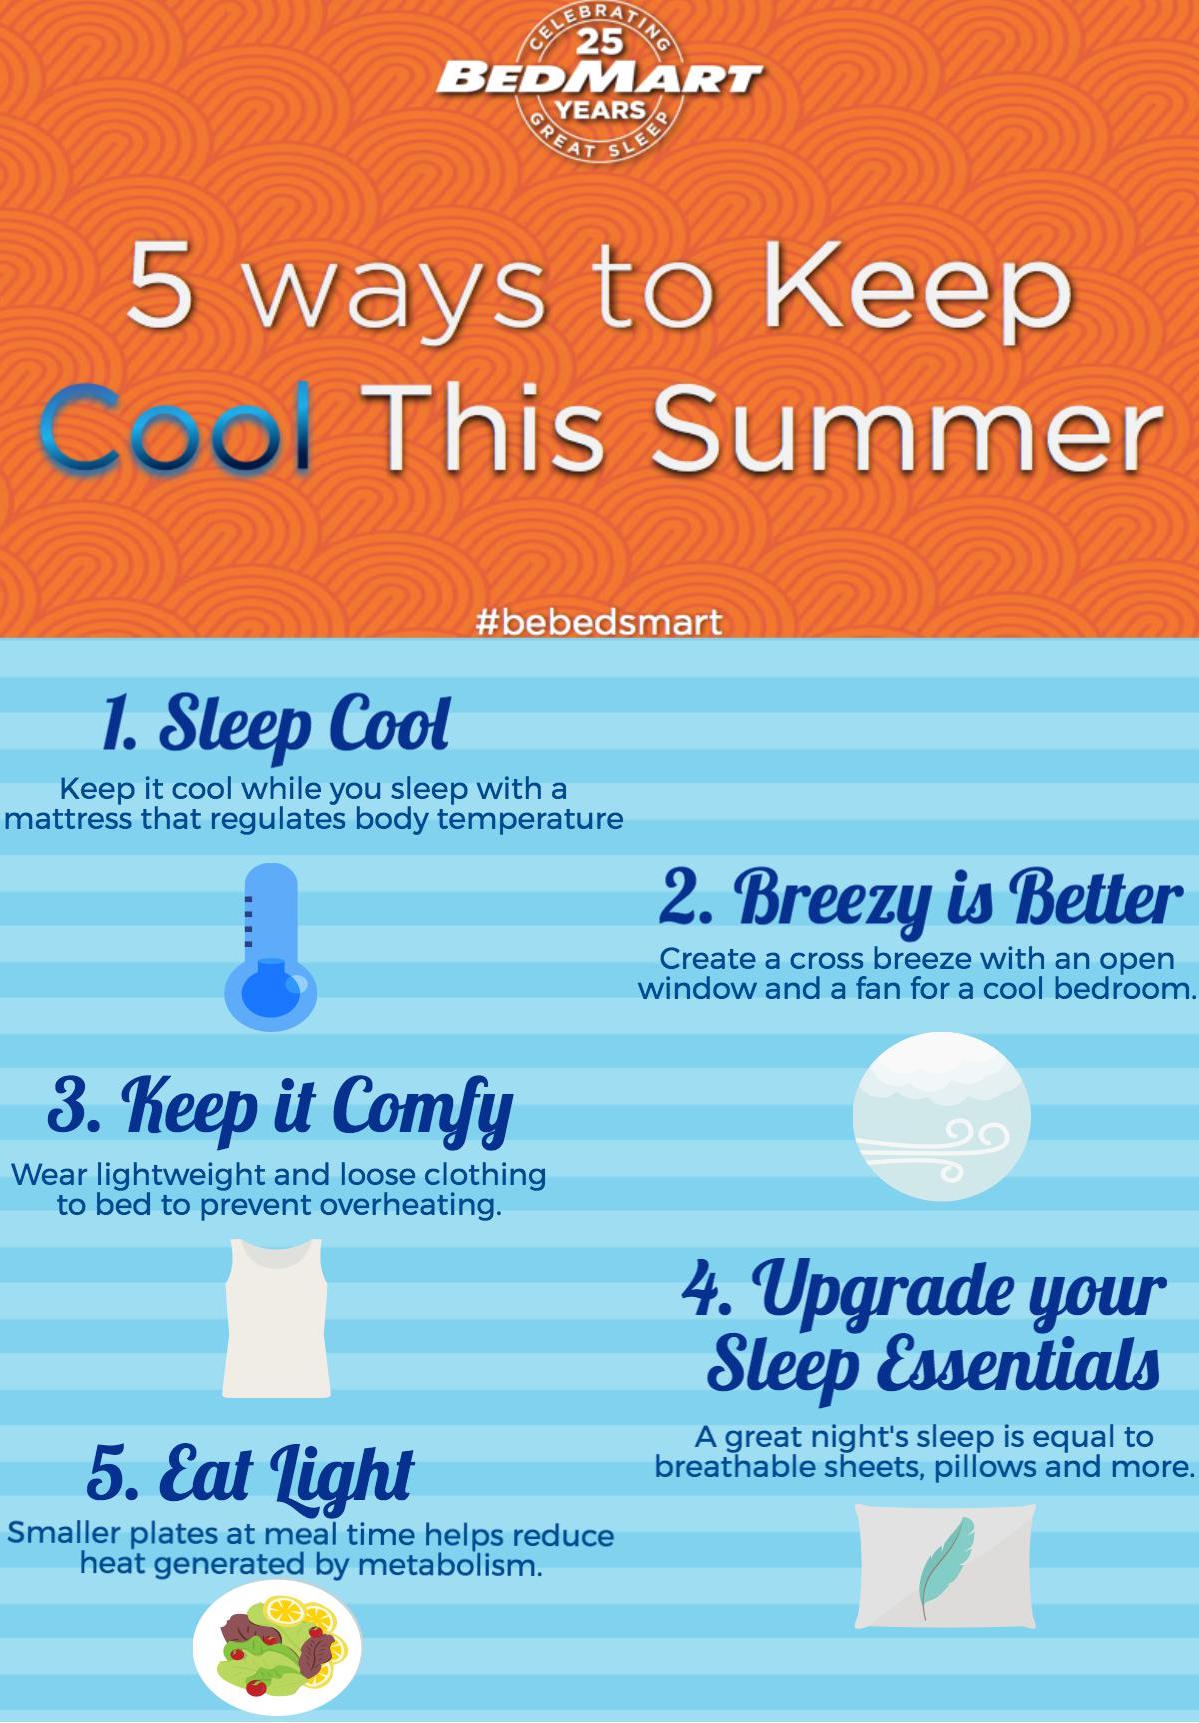 BedMart presents 5 ways to keep cool while you sleep this summer